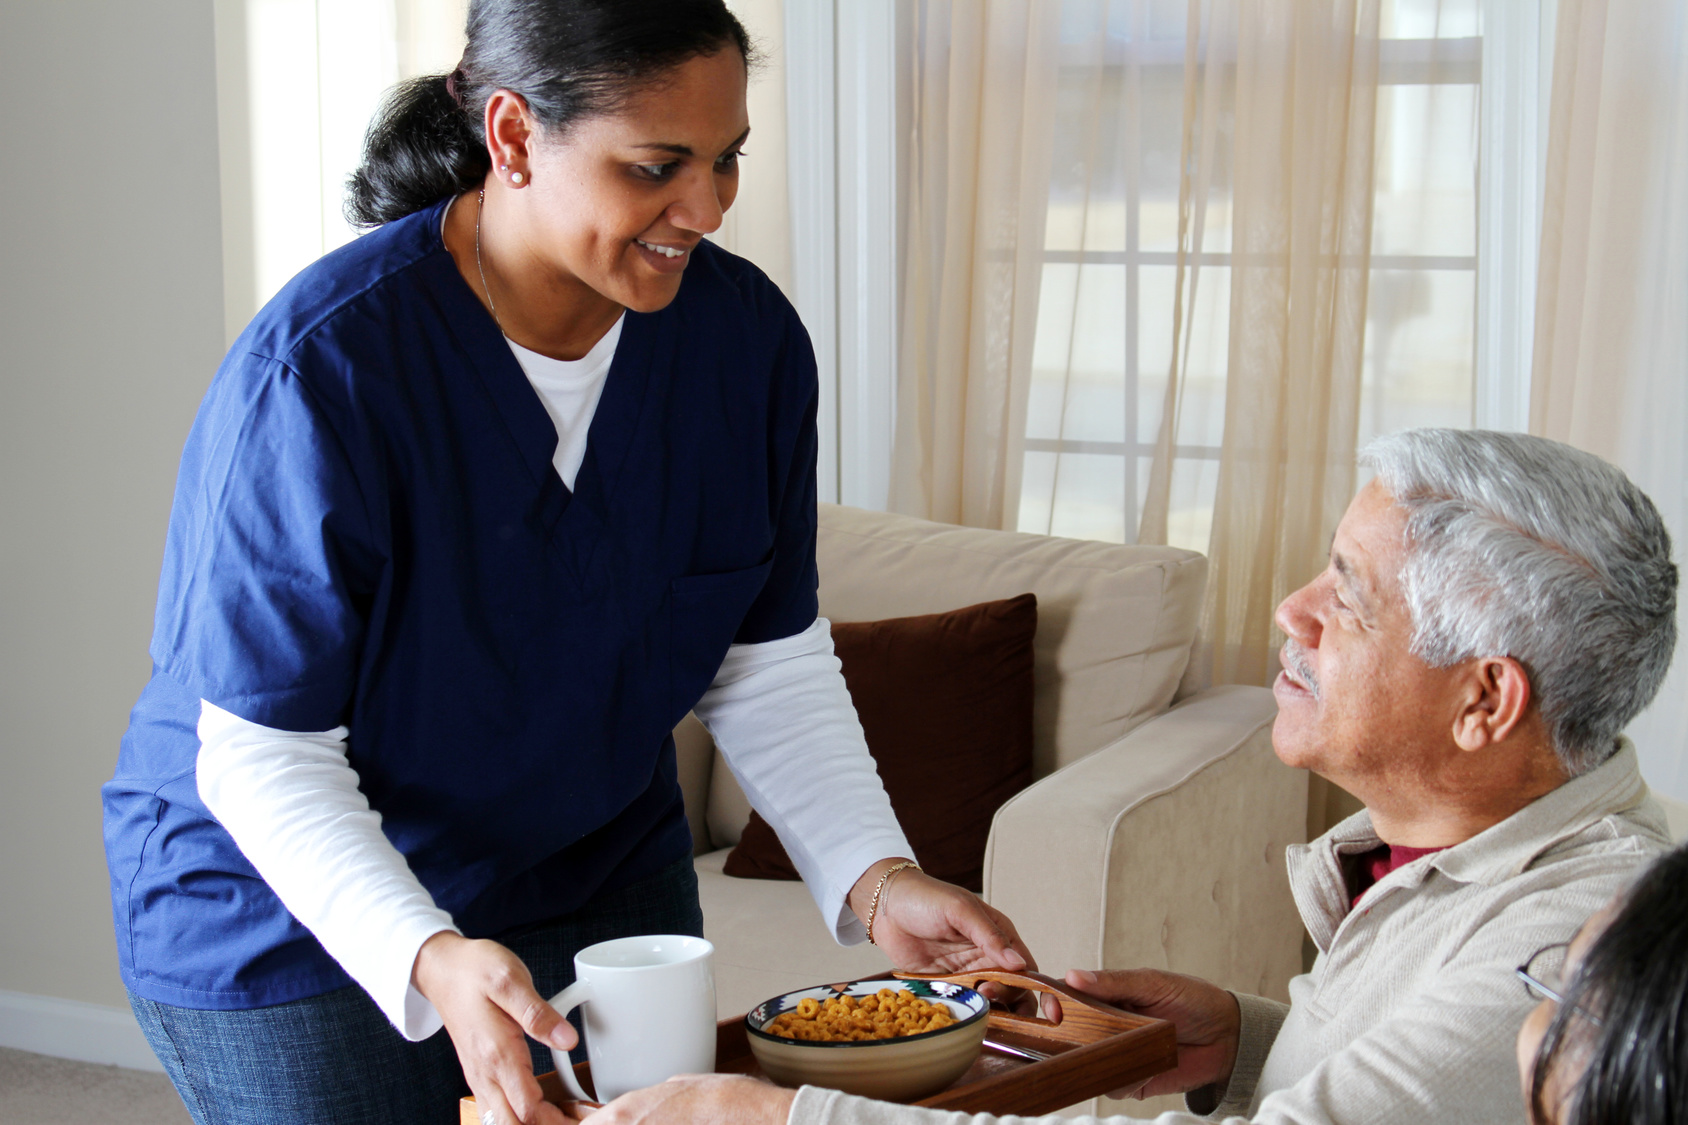 Develop Your Care Giving Skills With A PCA Certificate